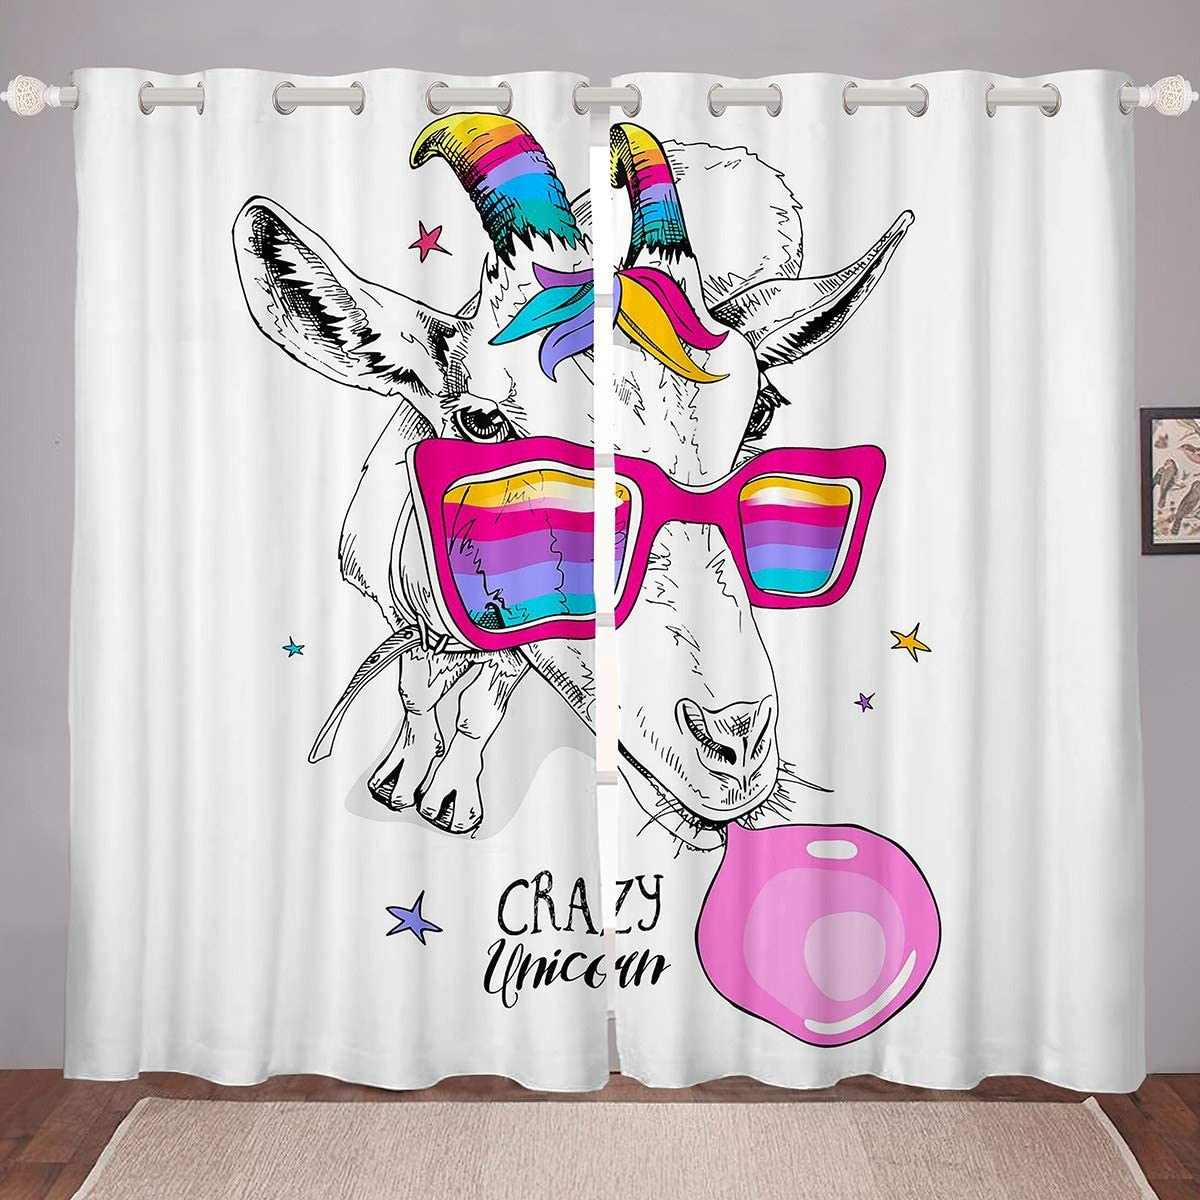 Feelyou Kids Cute Curtains for Bedroom Living Cartoon Manufacturer regenerated product Room Charlotte Mall Llama